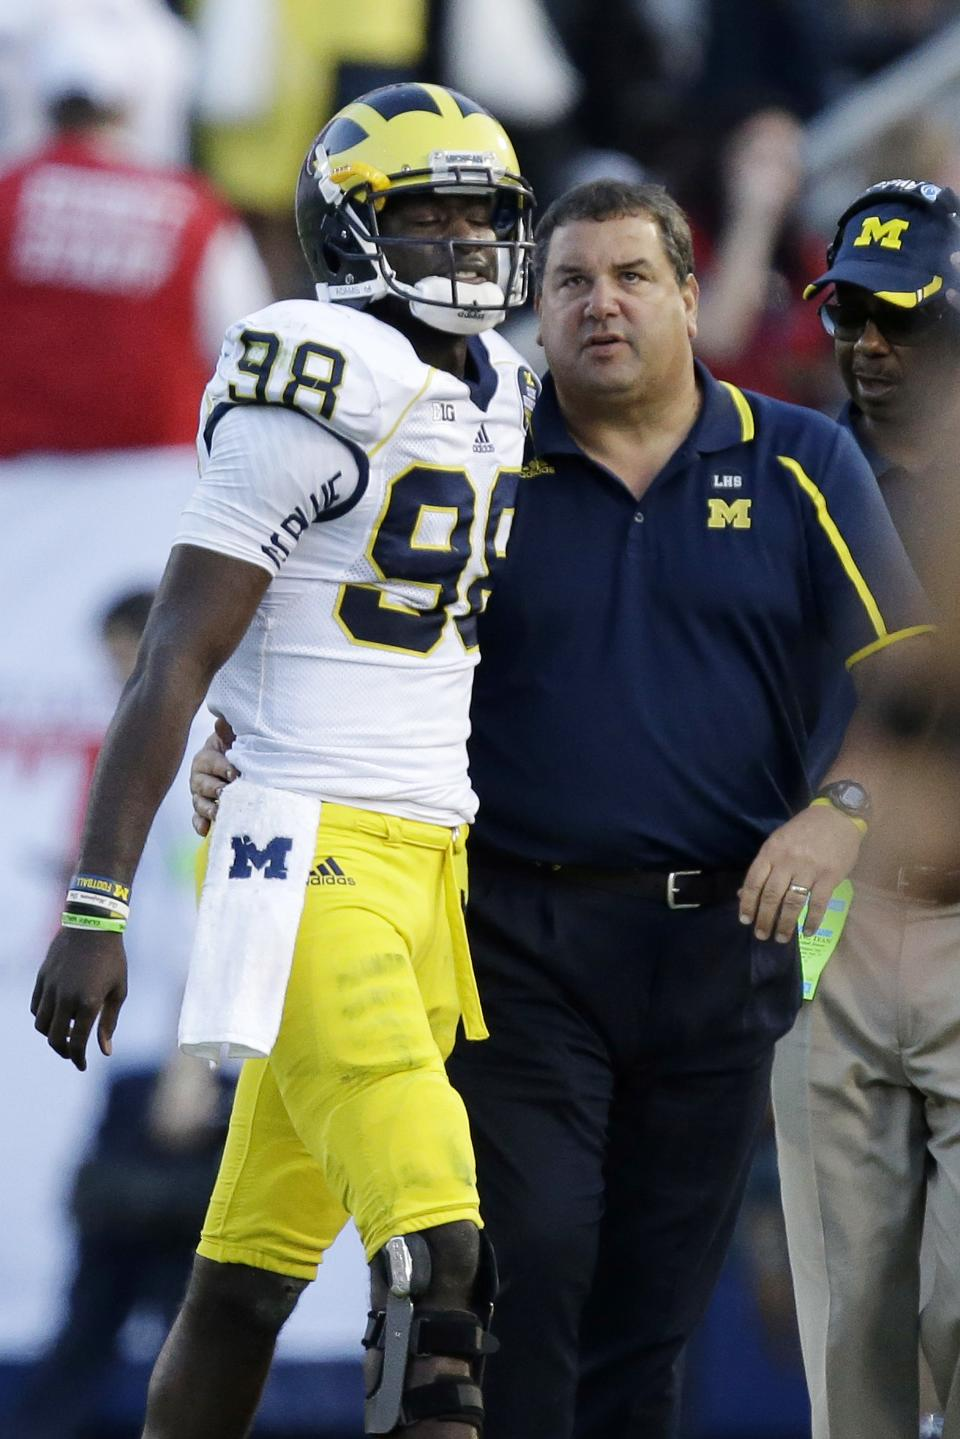 Michigan head coach Brady Hoke, right, talks with Michigan quarterback Devin Gardner (98) during the second quarter an NCAA college football game against Penn State in State College, Pa., Saturday, Oct. 12, 2013. (AP Photo/Gene J. Puskar)